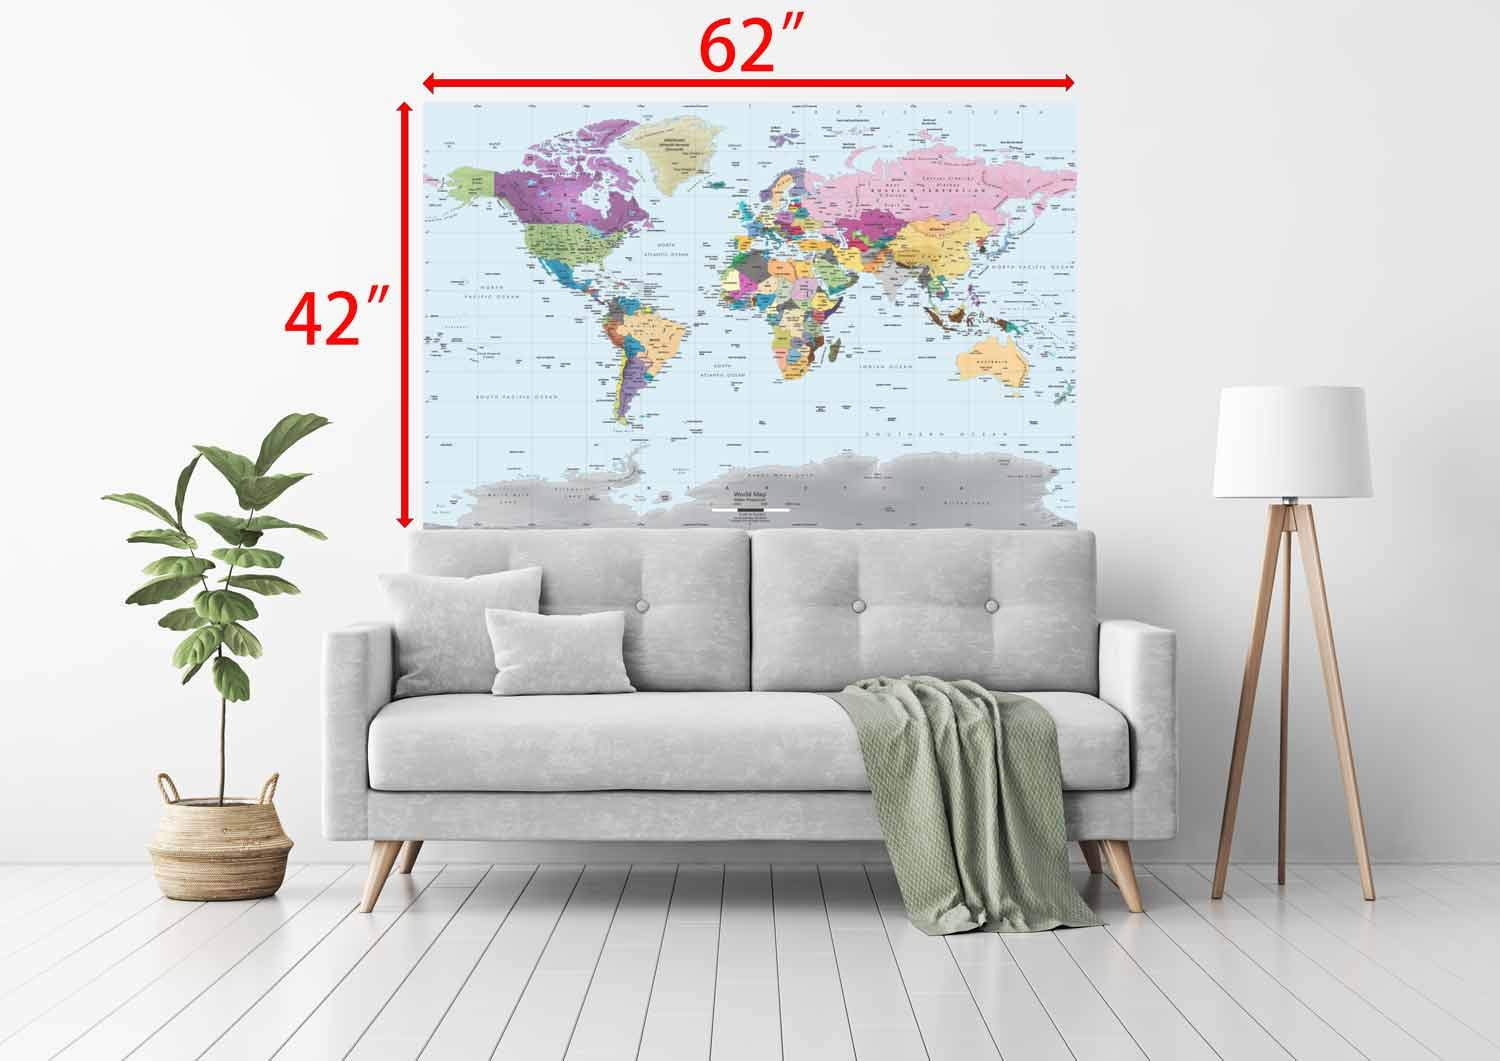 Academia Maps World Map Wall Mural - Modern Colorful Map - 62 x 42 One-Piece Premium Self-Adhesive Fabric - Professional-Grade DIY by Academia Maps (Image #3)